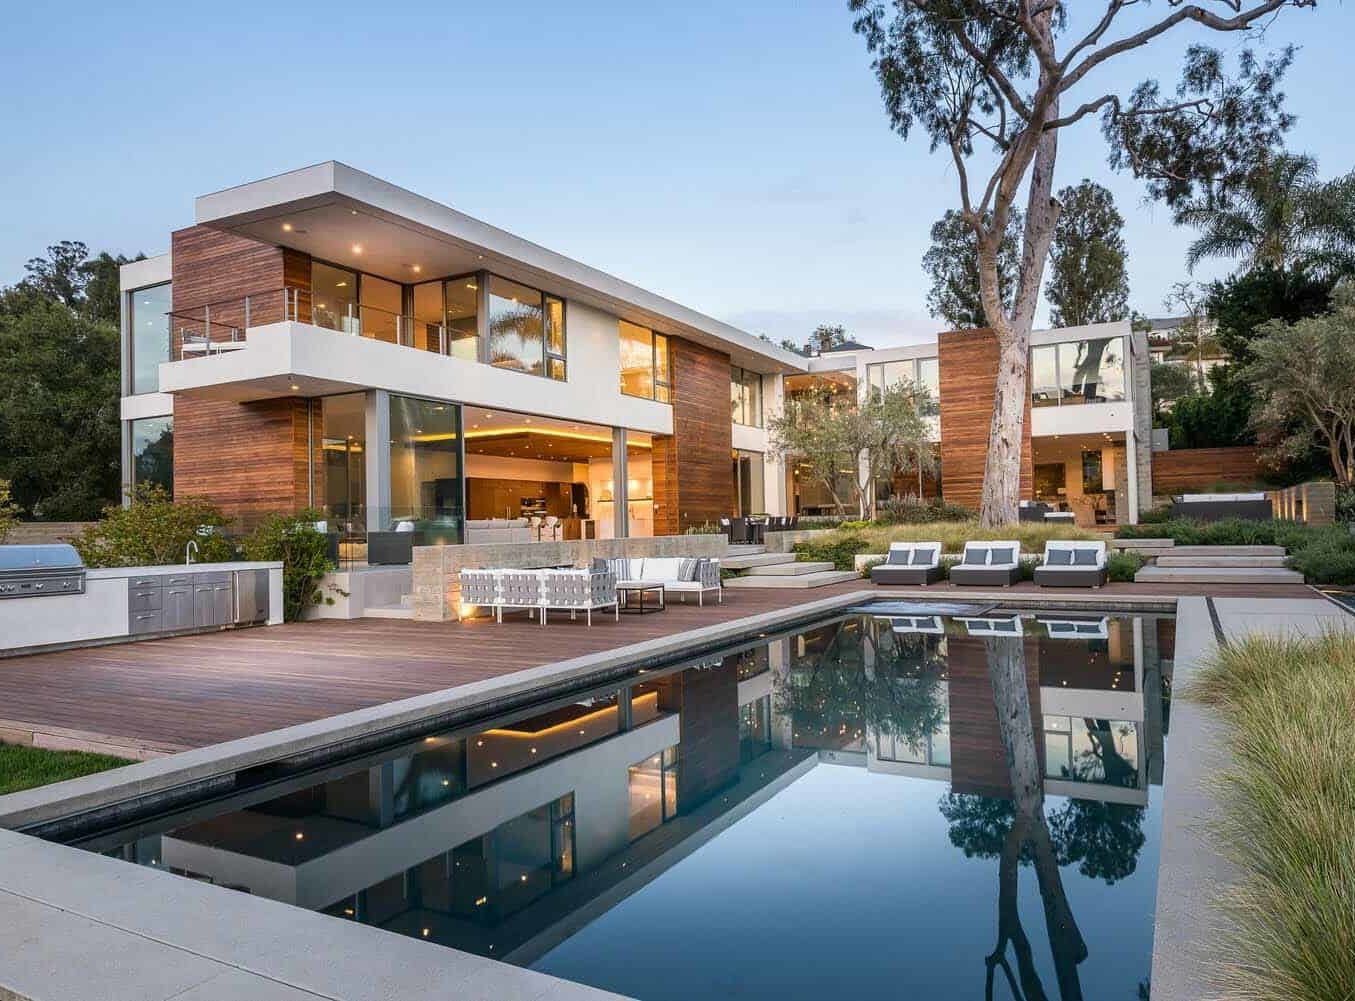 General Home Remodeling Contractor in Hollywood CA